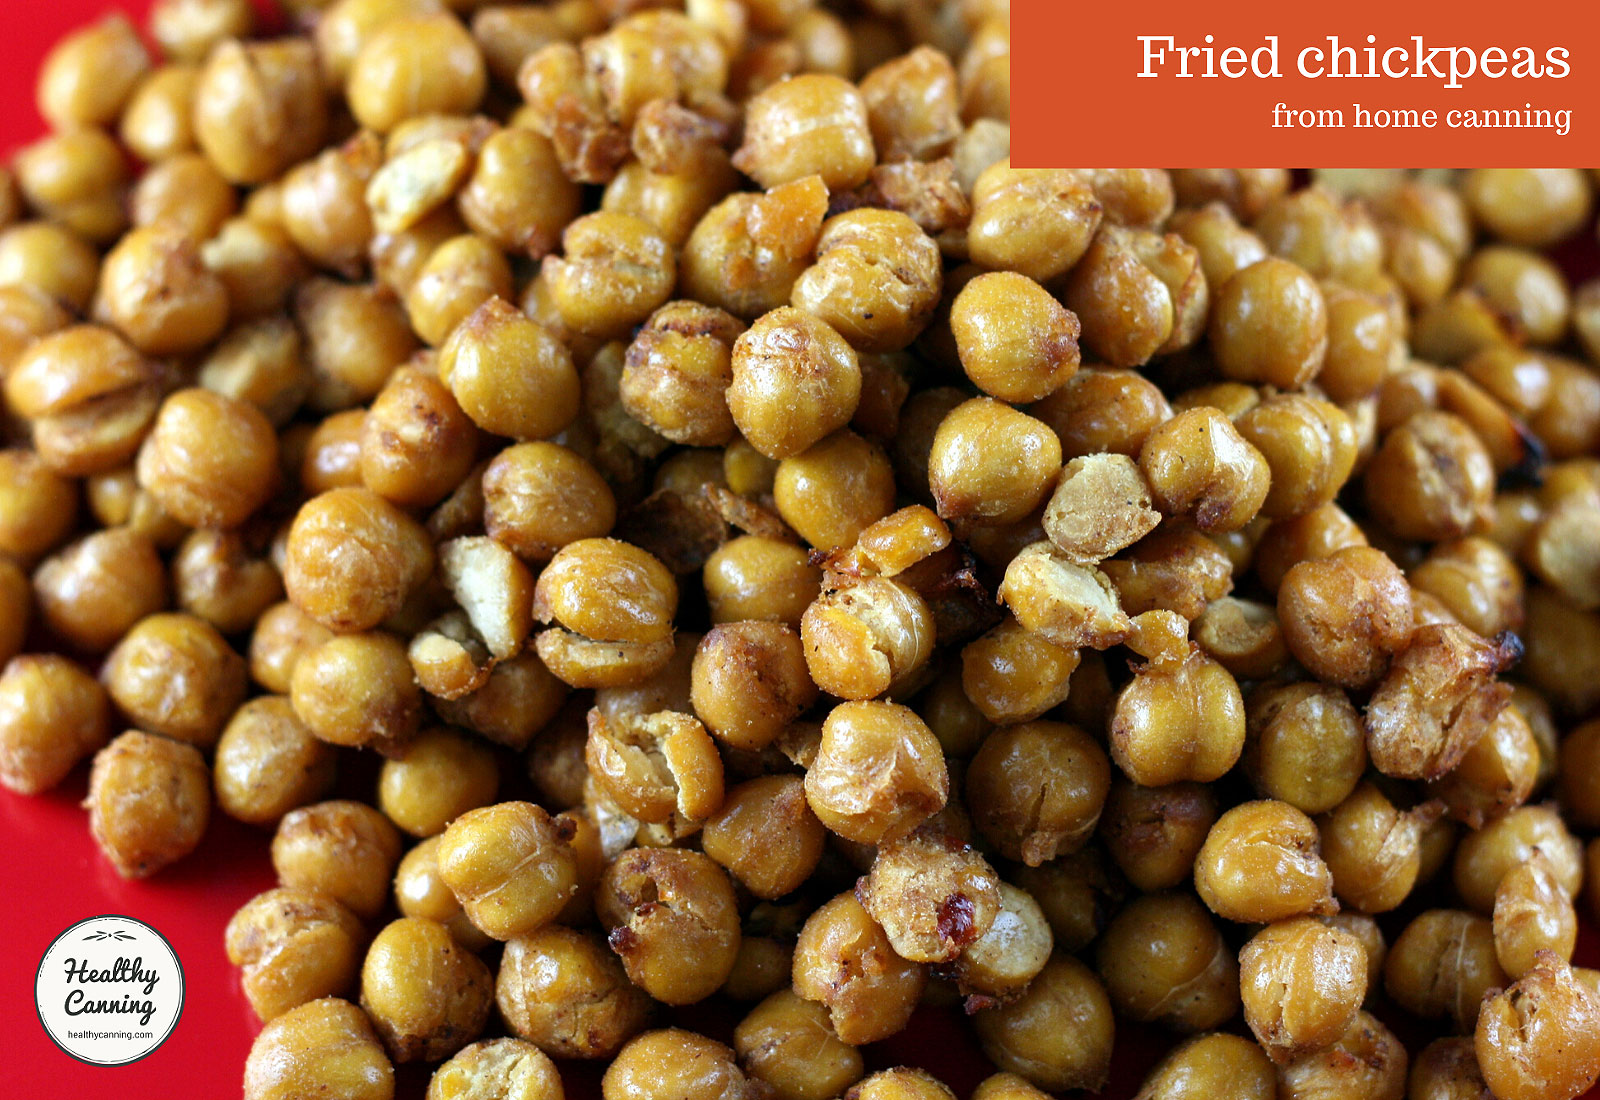 Fried chickpeas from home canning